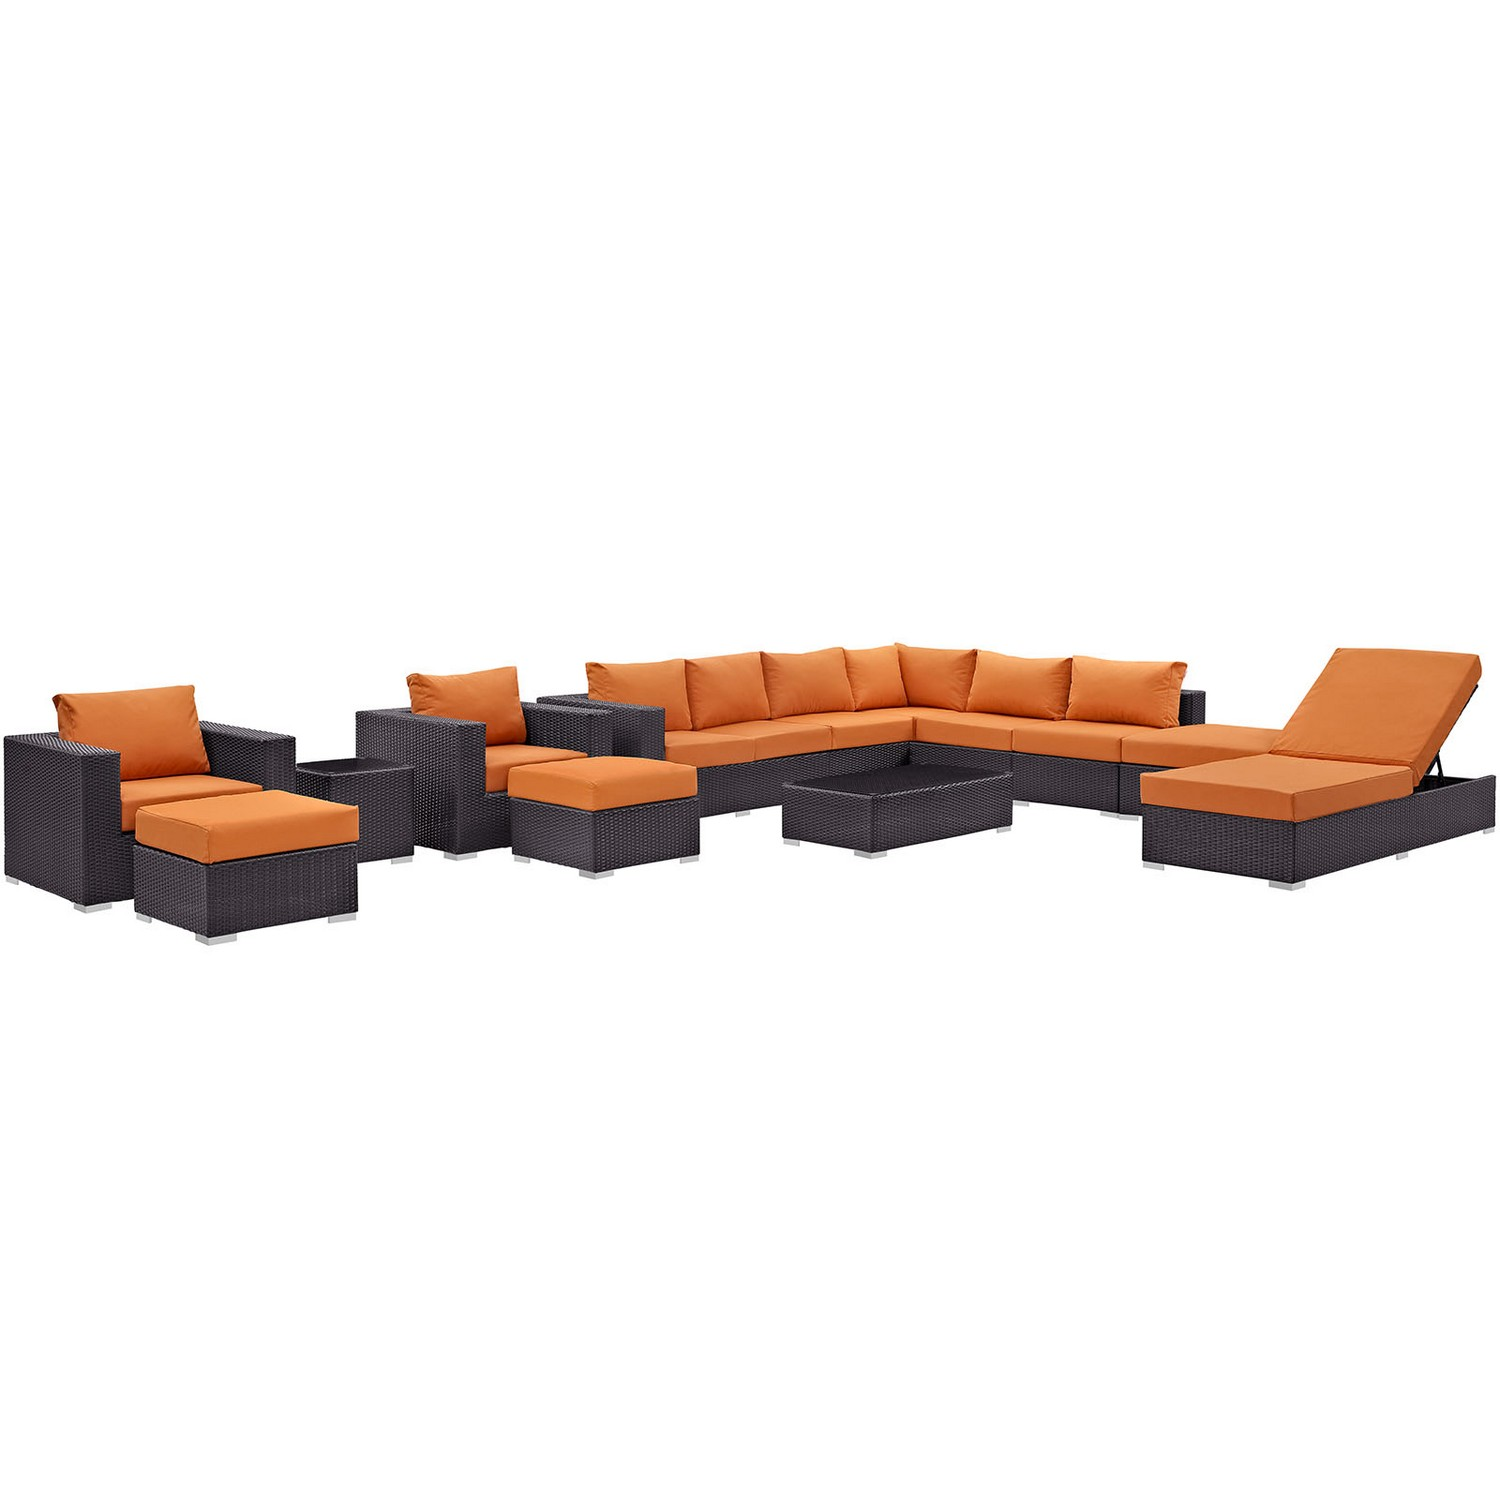 Modway Convene 12 Piece Outdoor Patio Sectional Set - Espresso Orange